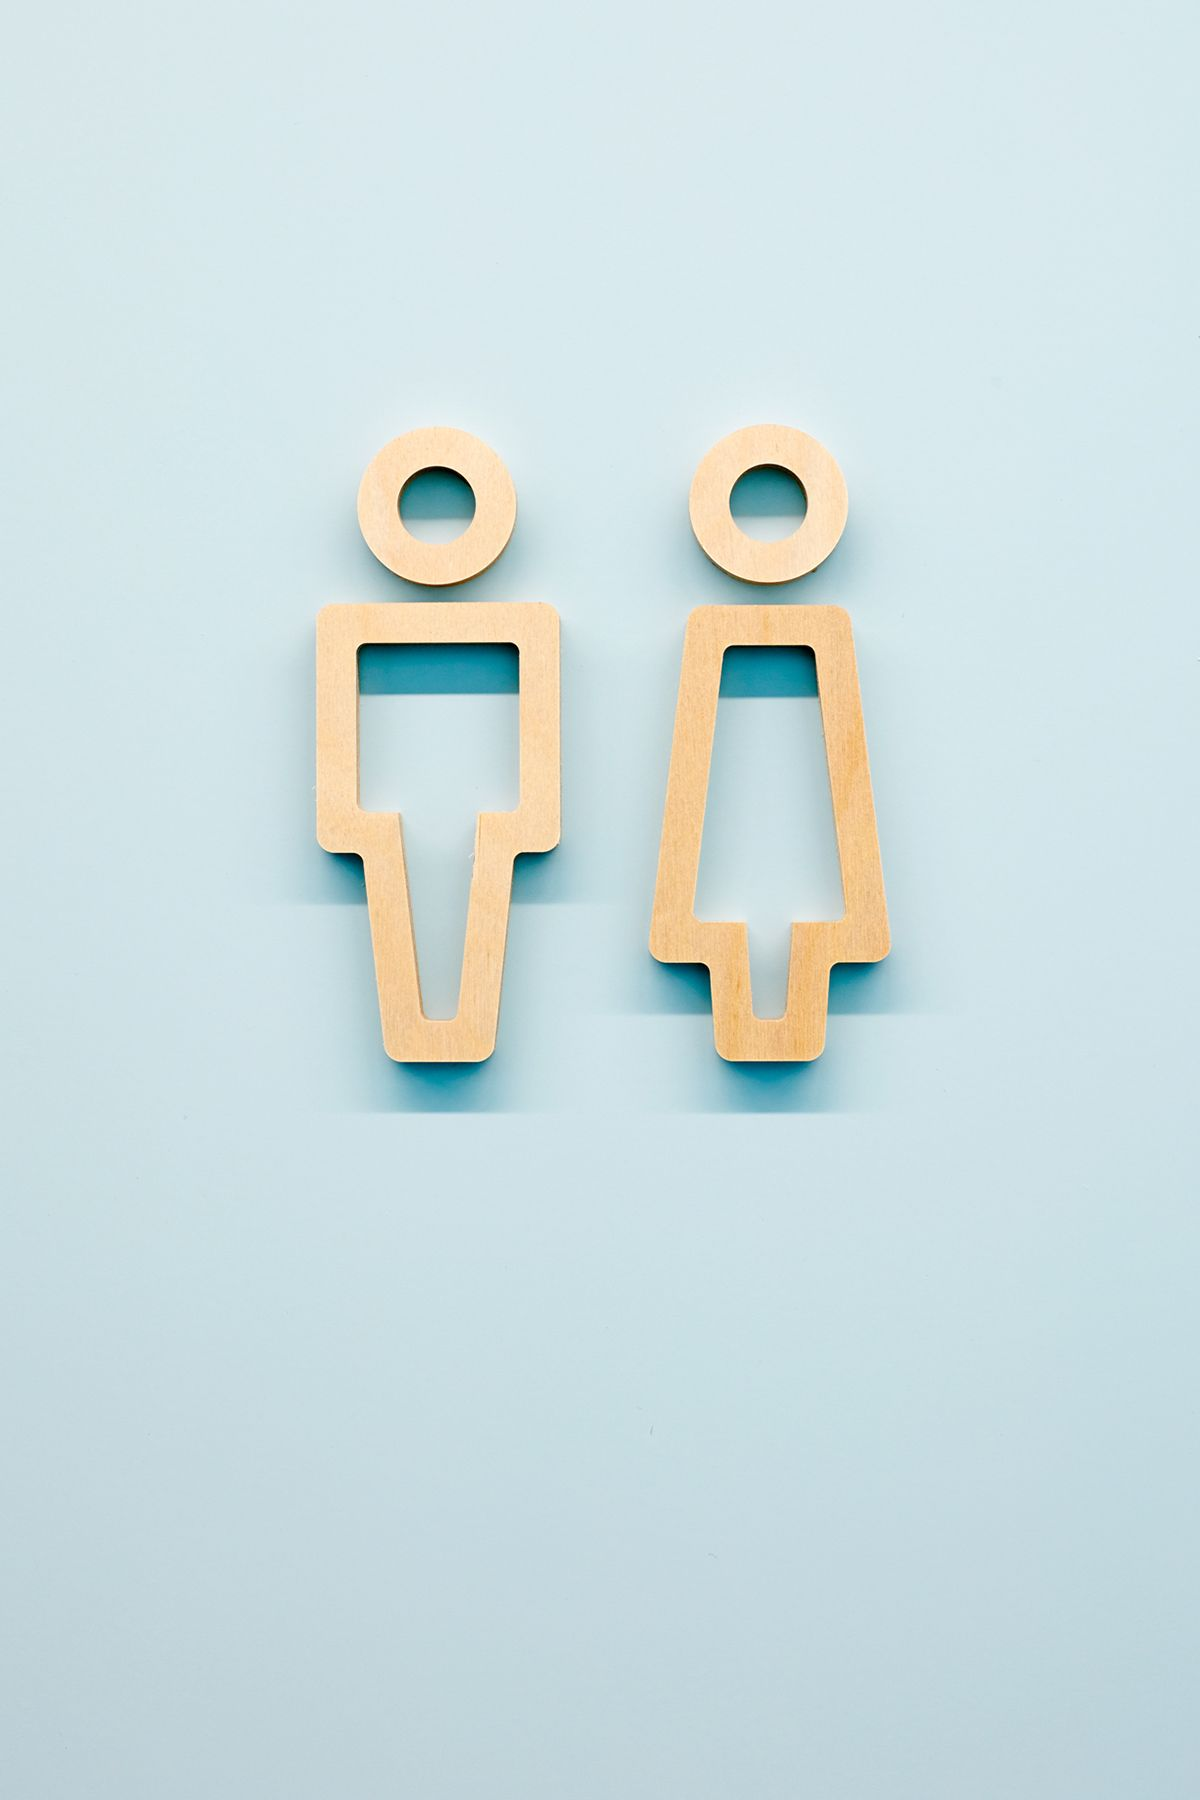 Girls bathroom sign outline - Felleskj Pet Main Office Signage And Wayfinding By Sn Hetta